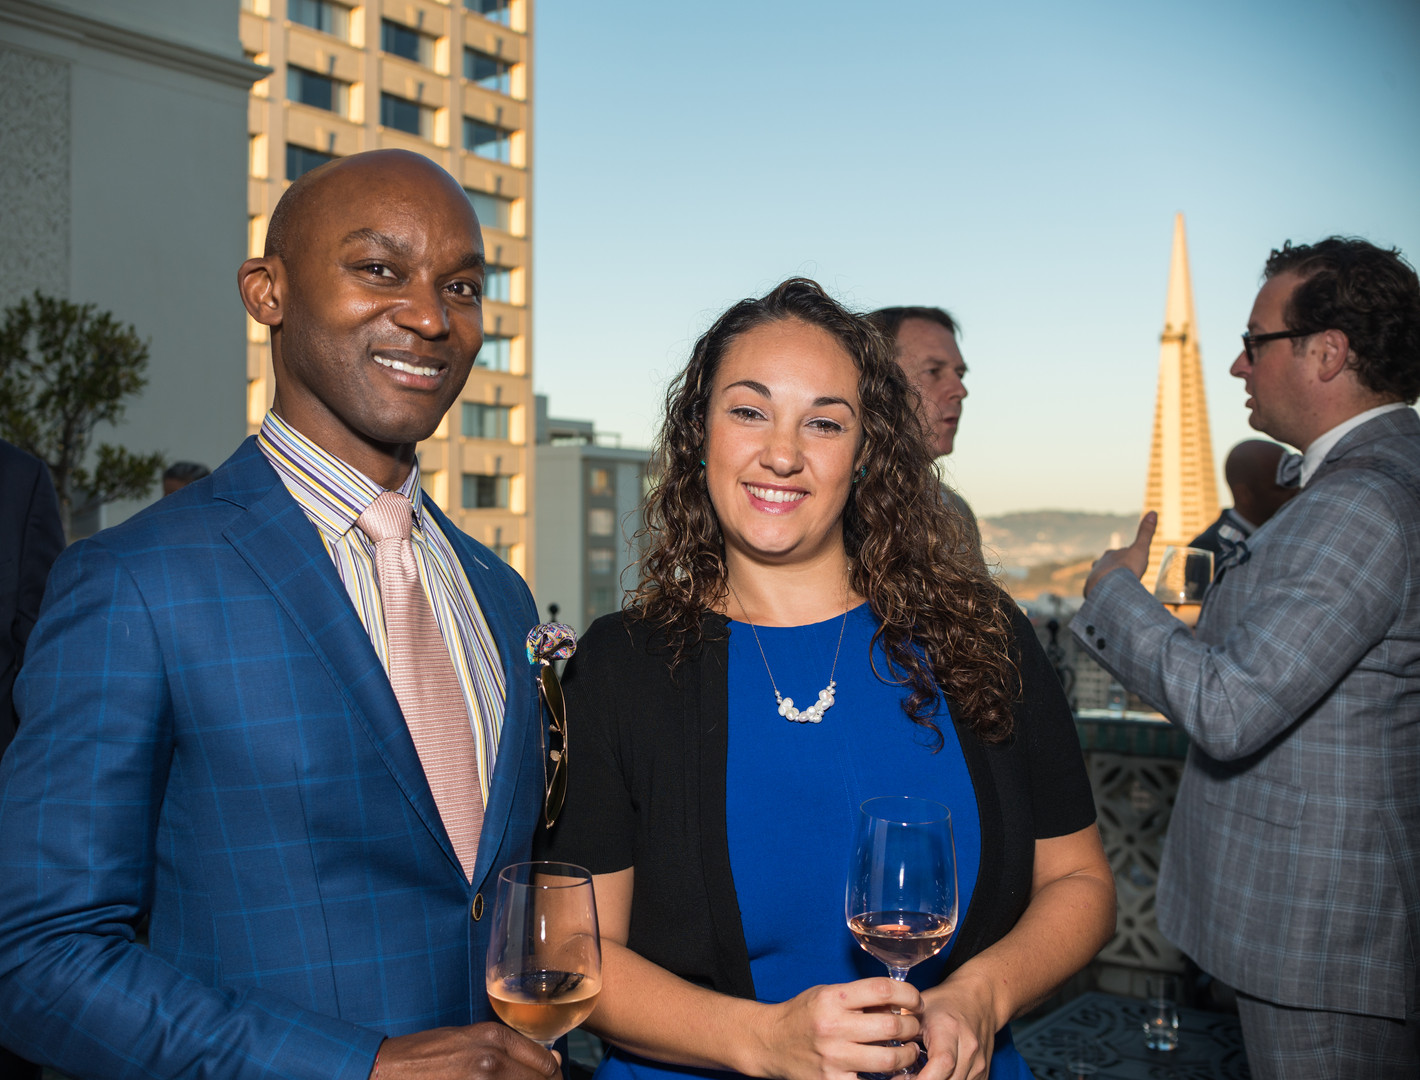 Corporate photography-Accor Hotels - The Fairmont, San Francisco